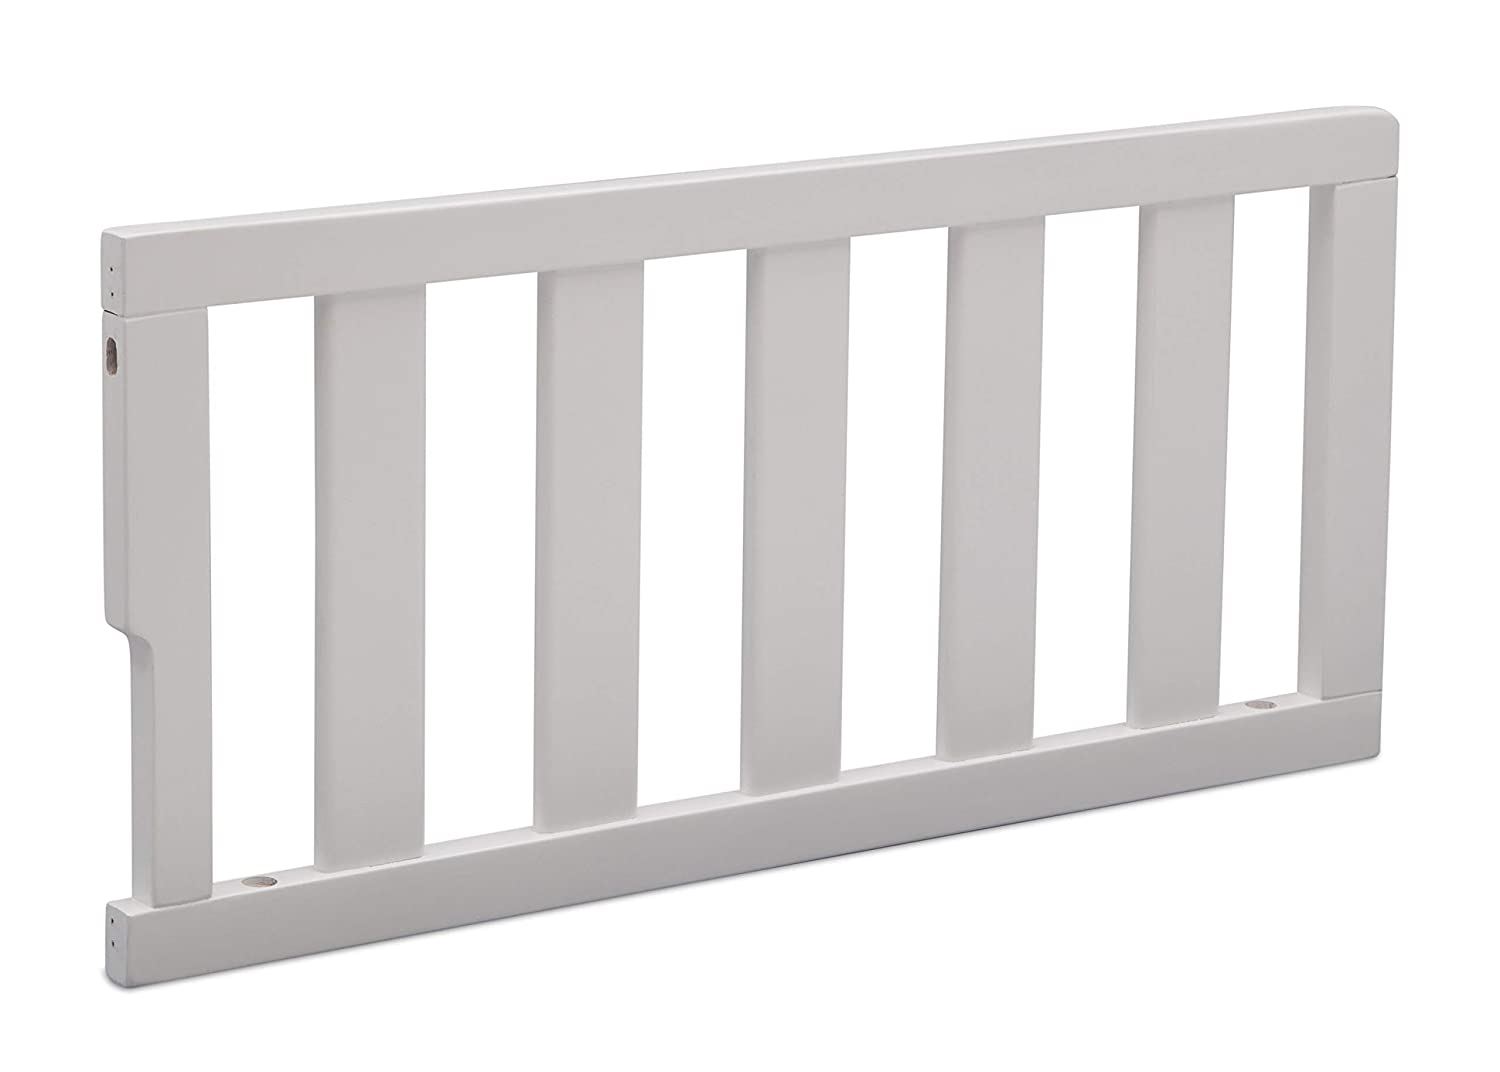 Delta Children Bennington Elite Toddler Guardrail 550725, Bianca White